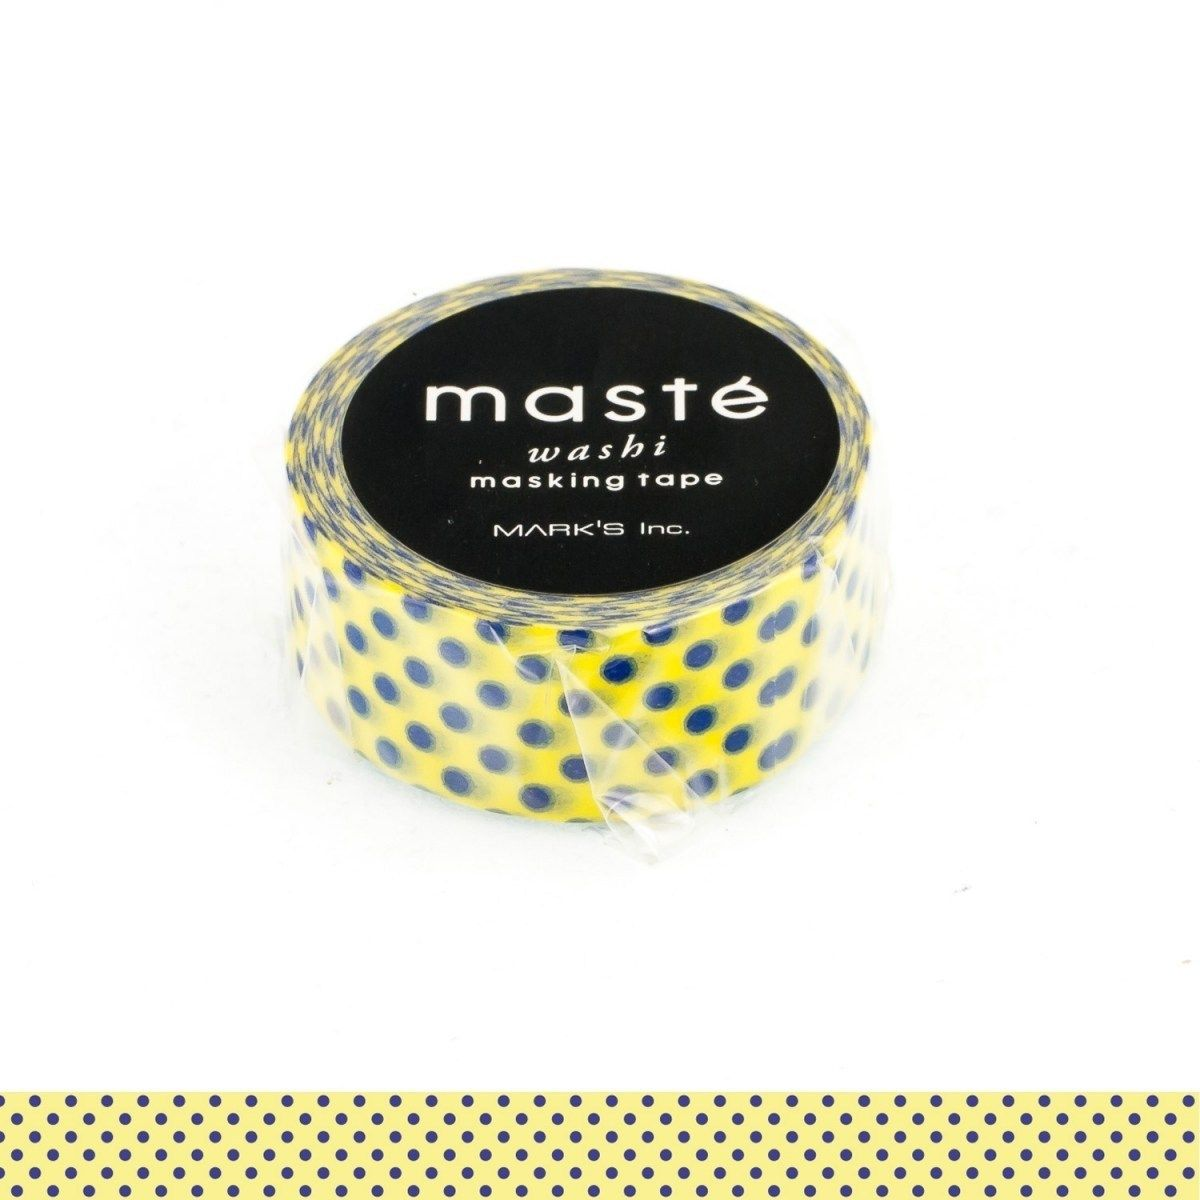 WASHI TAPE MASTÉ LIGHT YELLOW/DOT